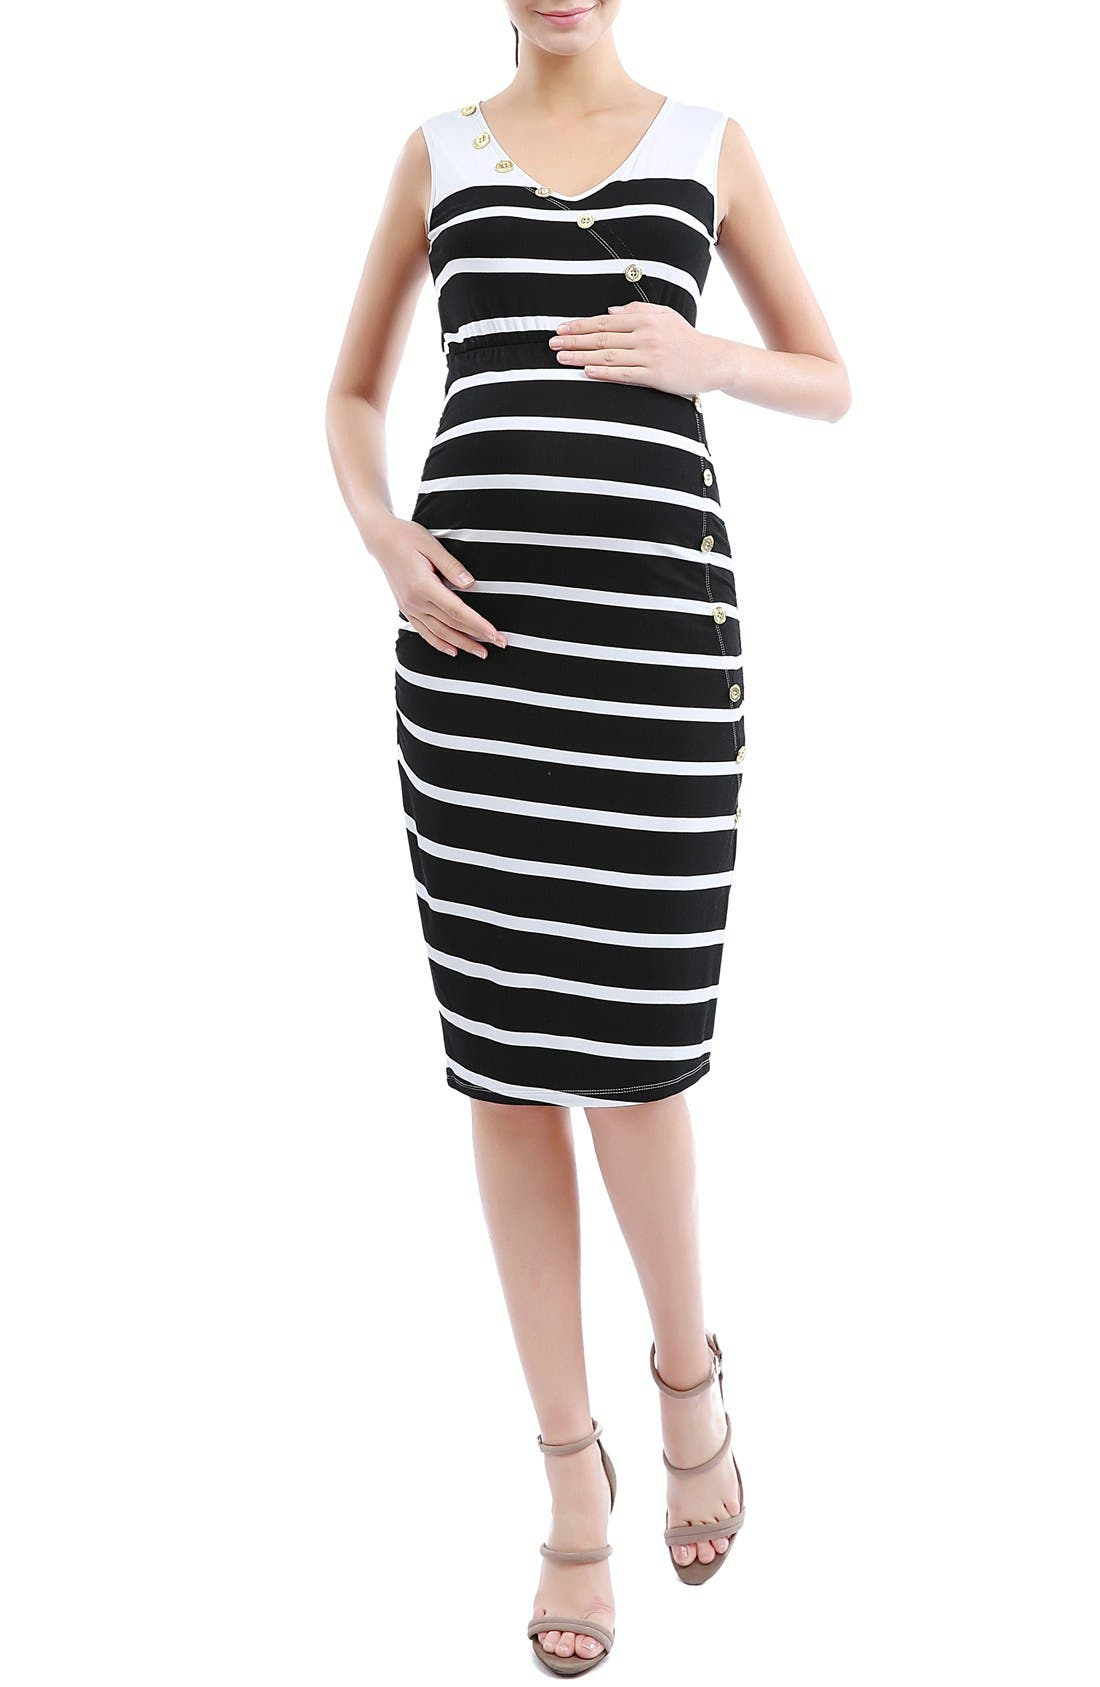 'Shea' Stripe Maternity Dress,                         Main,                         color, Black/ White